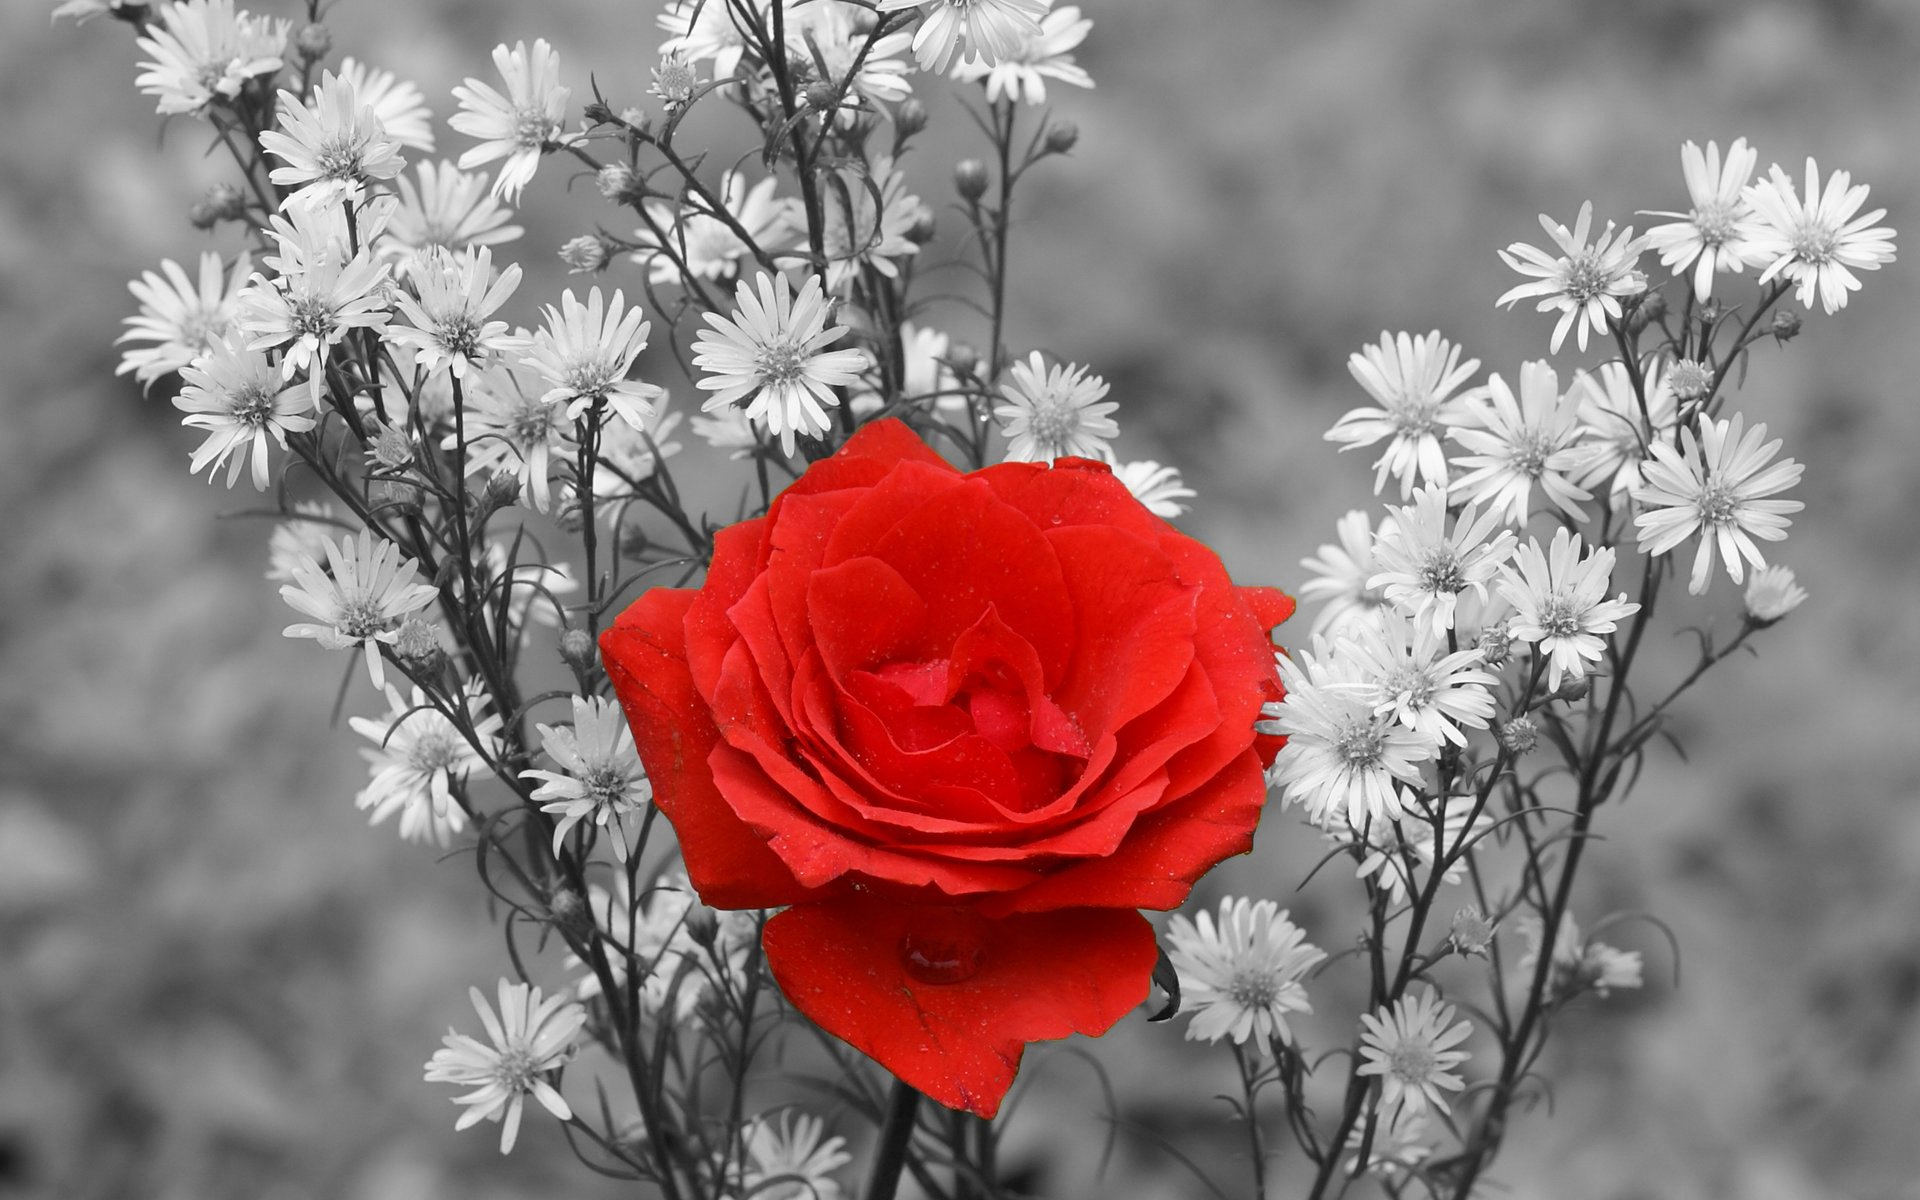 Earth - Rose  Red Red Rose Photography Beautiful Nature Flower Wallpaper